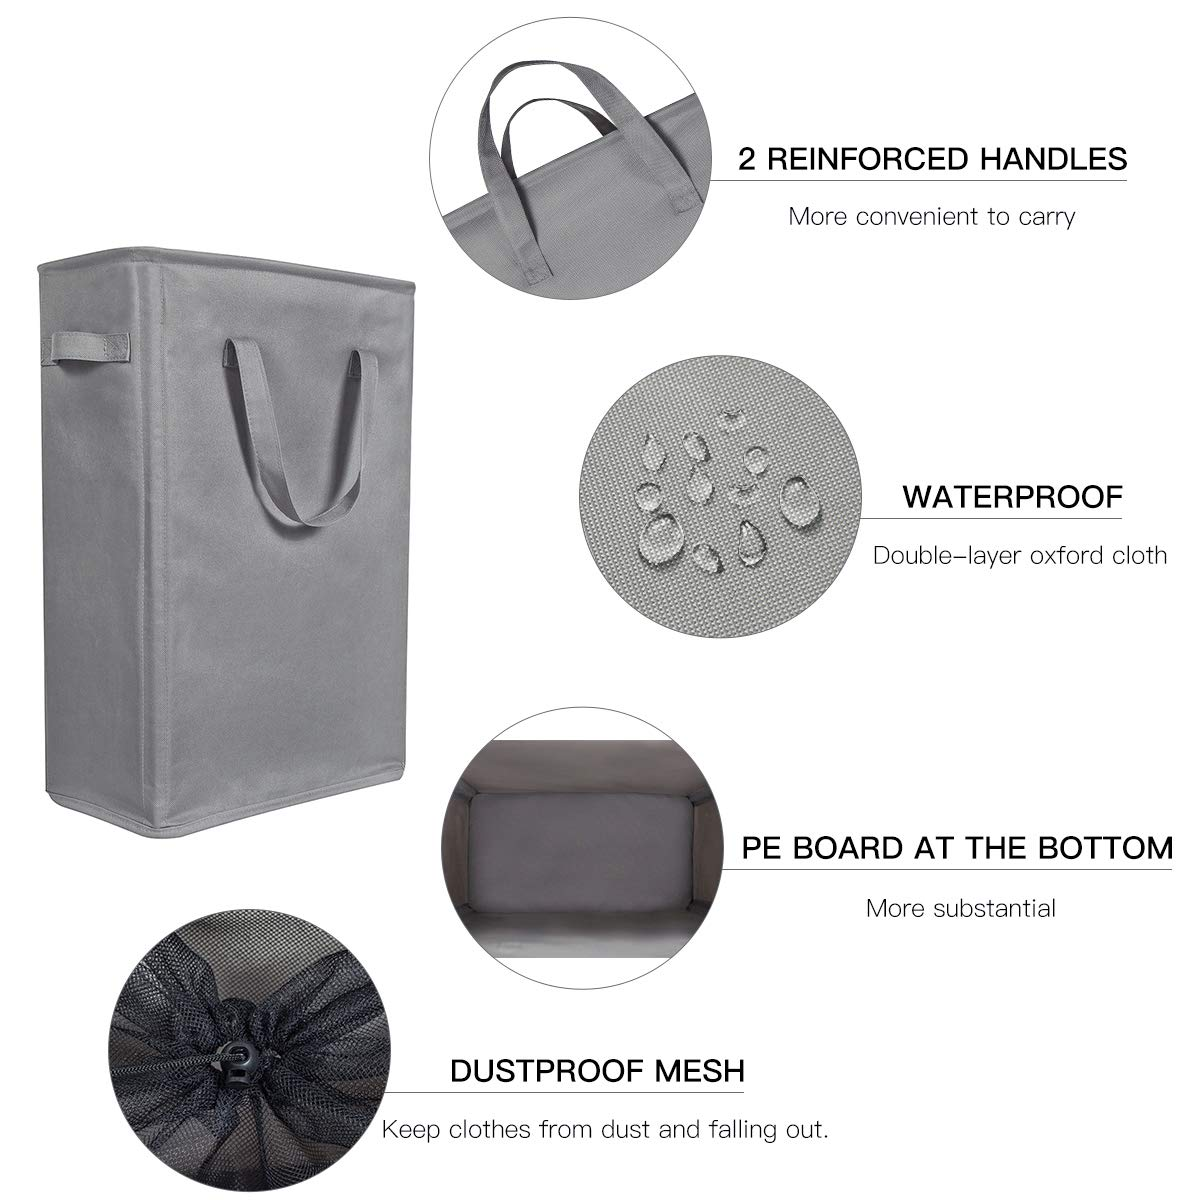 WOWLIVE Slim Laundry Hamper Thin Laundry Basket Foldable Nursery Hampers for Laundry Durable Dirty Clothes Hamper with Handles for Home Dorm (Gray)